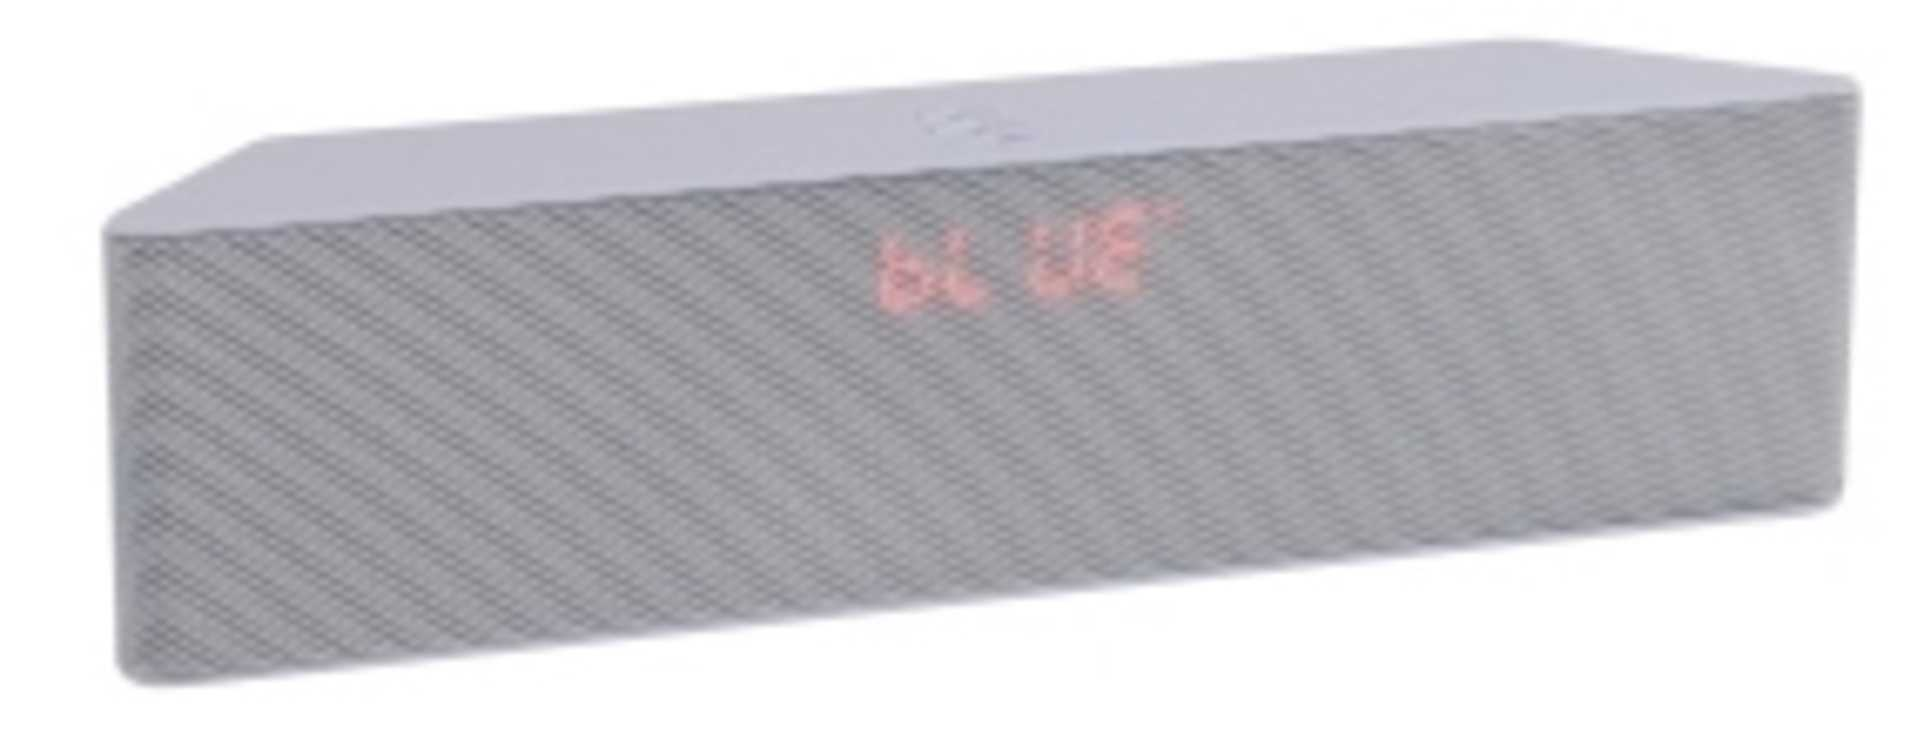 ENCEINTE GOMME BLANC BLUETOOTH SYSTEME 1.0 PUISSANCE 6 WATTS RMS 0